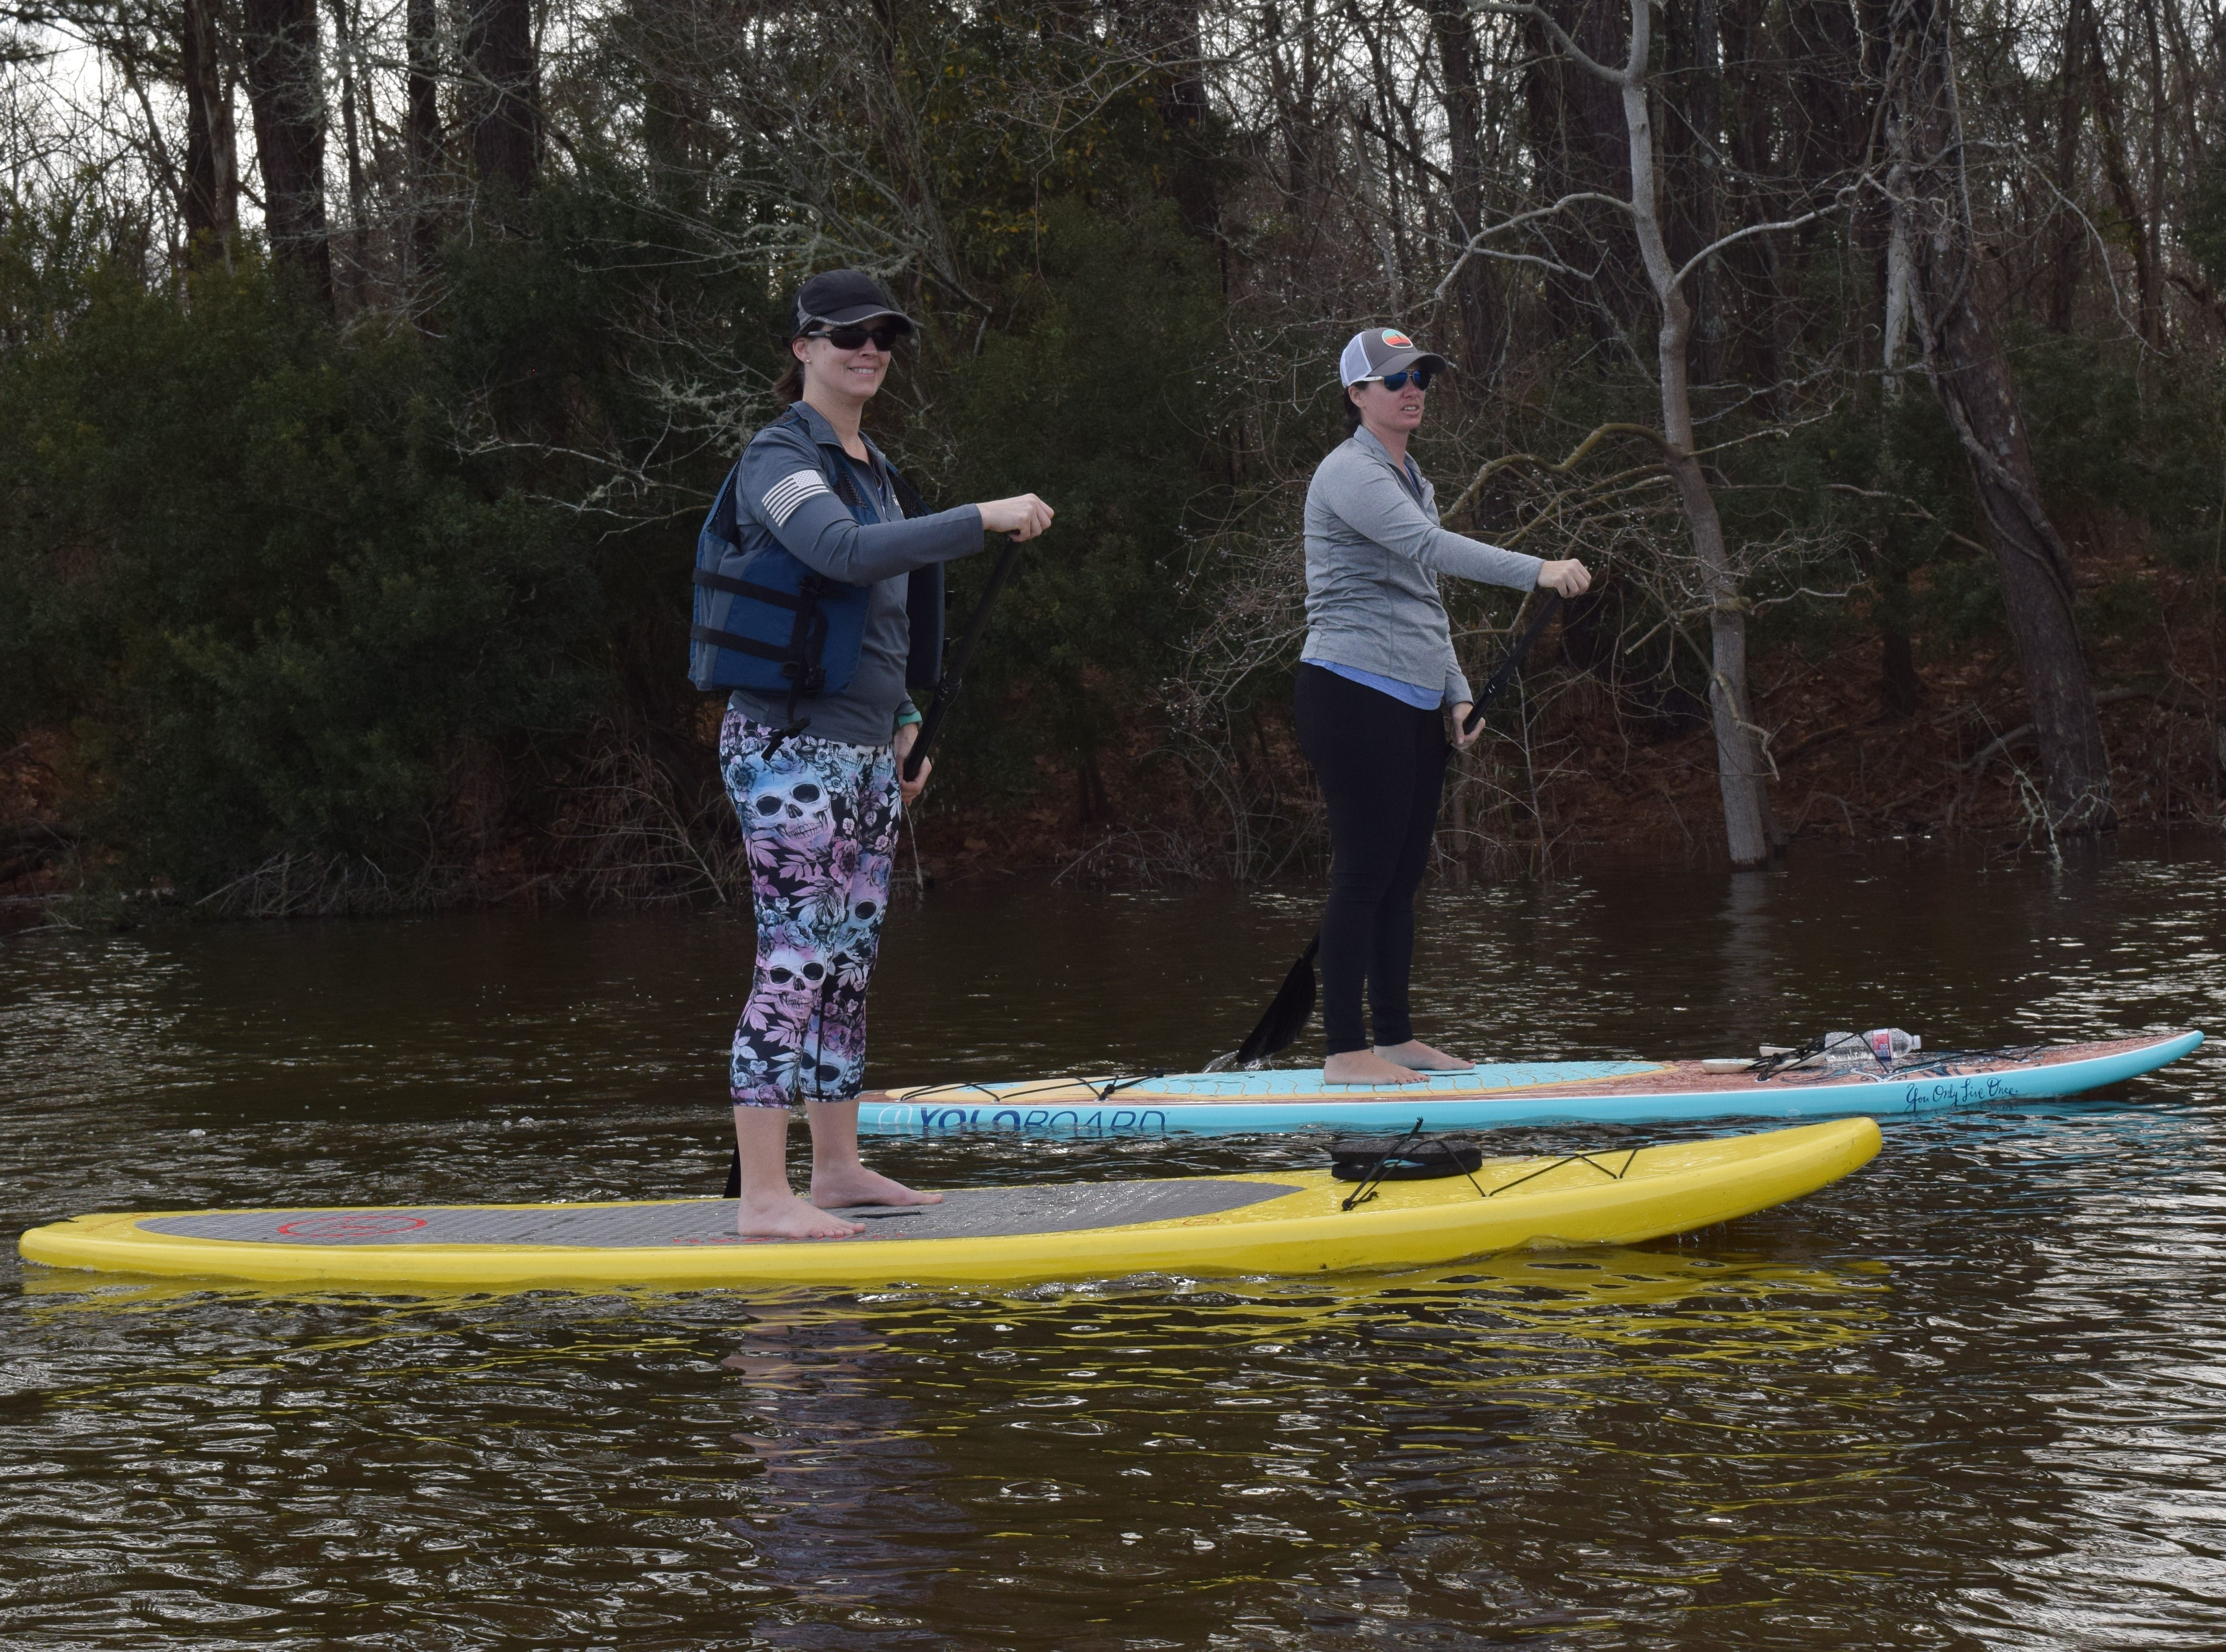 River Paddle Rentals held a New Years Day Paddle for experienced paddlers Tuesday, Jan. 1, 2019 at the Palmer Chapel Oxbow in Pineville. Karen Waight and her husband James Waight, owners of River Paddle Rentals and Karen's sister April Whitehead and Town Talk staff photographer paddled the oxbow for an hour. The temperature for Tuesday was 62 degrees. For more information about River Paddle Rentals and other events, visit their Facebook page.